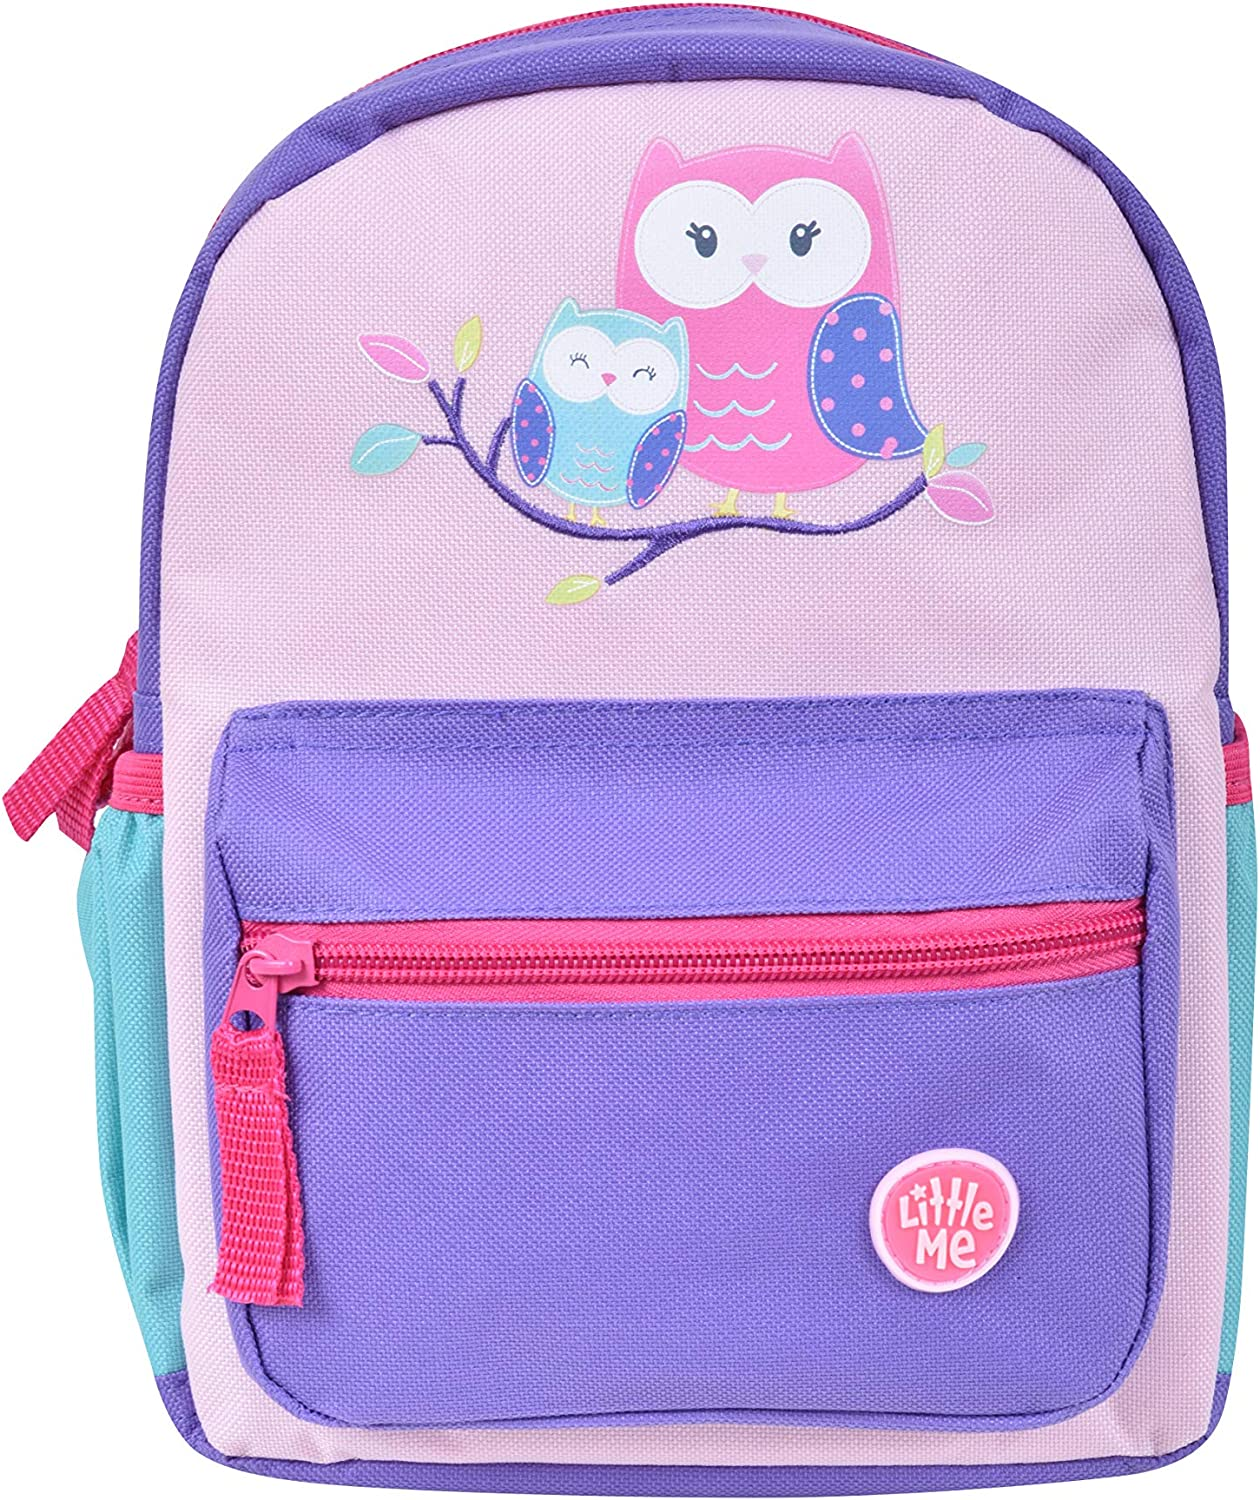 Little Me Owl Backpack with Safety Harness Leash Child Baby Toddler Travel